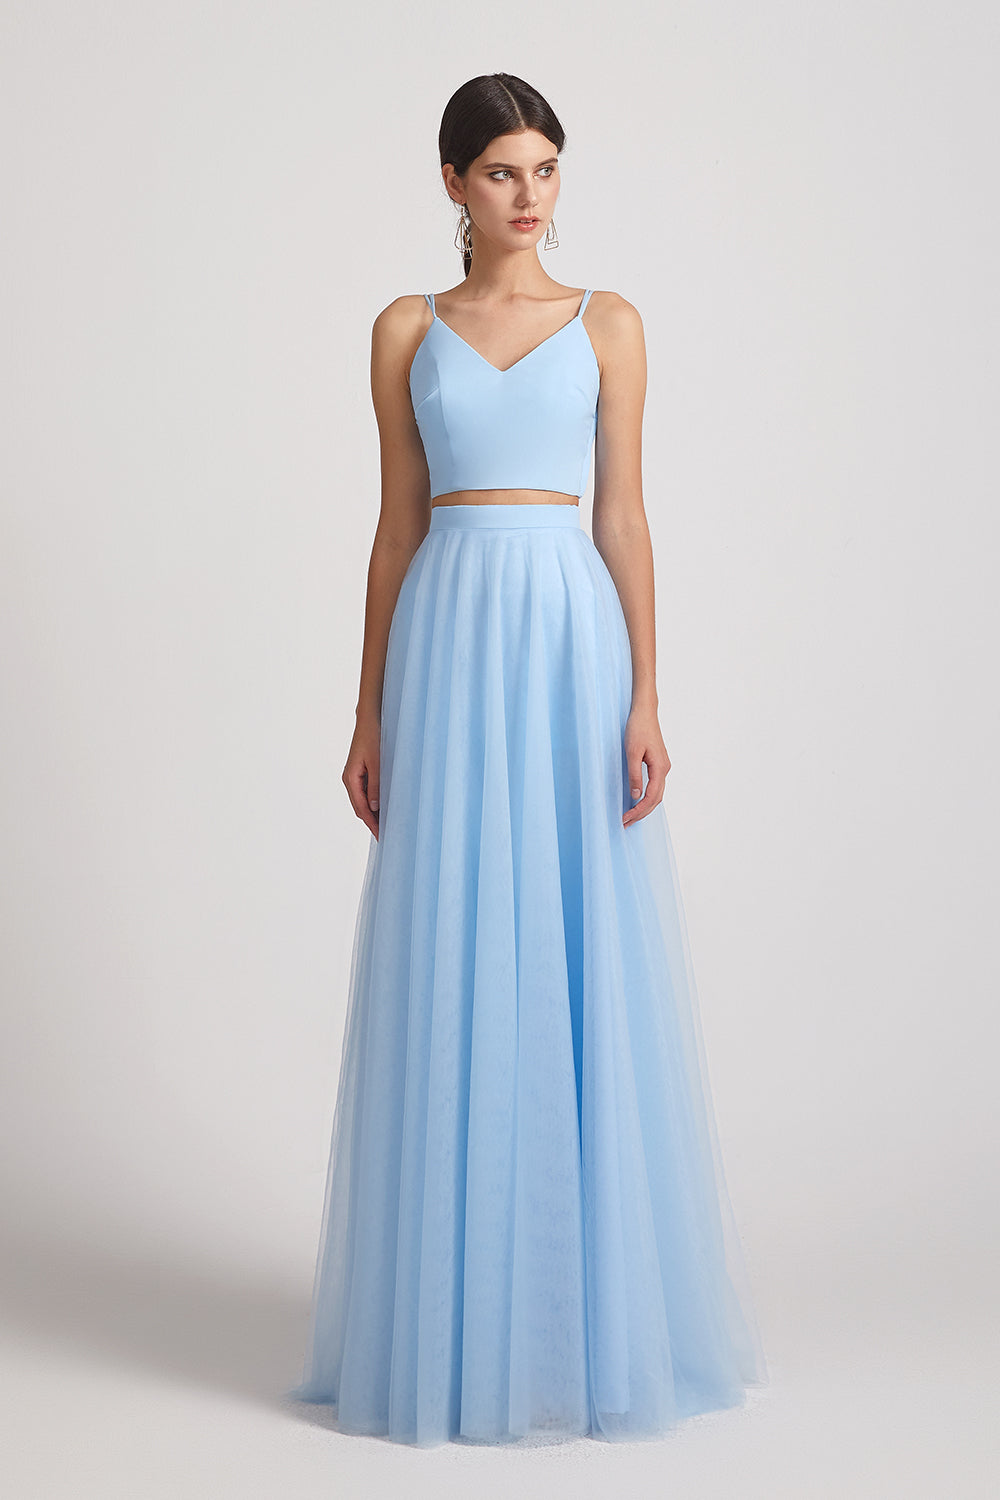 a-line light blue two pieces bridesmaid gowns